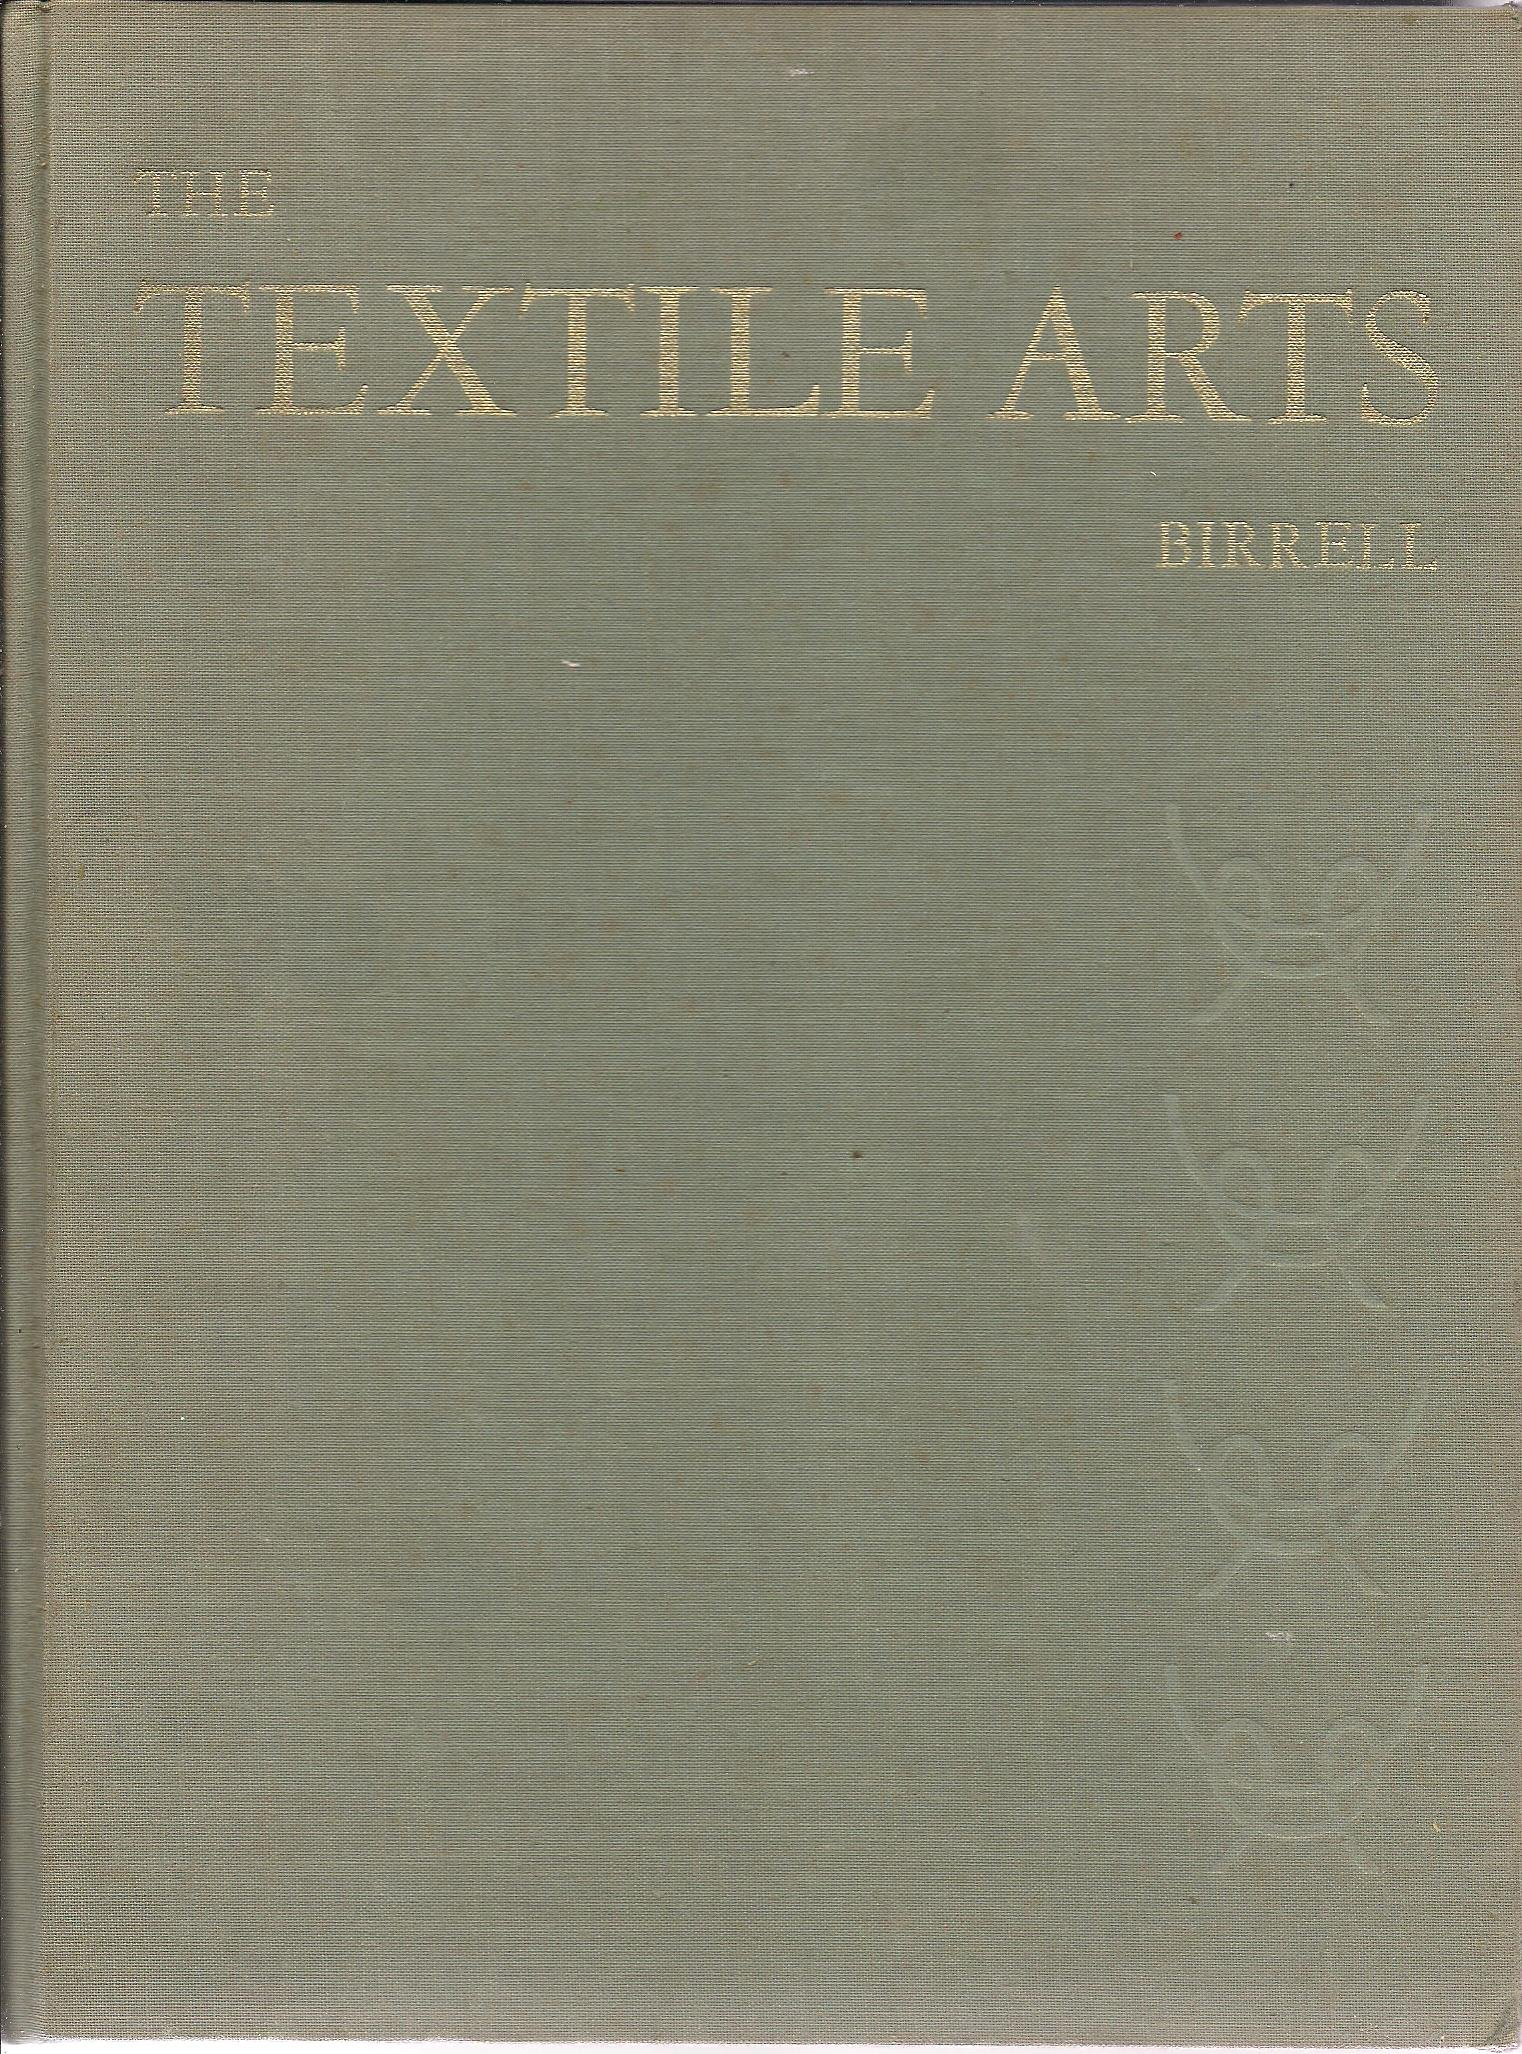 The Textile Arts...a Handbook of Fabric Stucture and Design Processes: Ancient and Modern Weaving, Braiding, Printing, and Other Textile Techniques